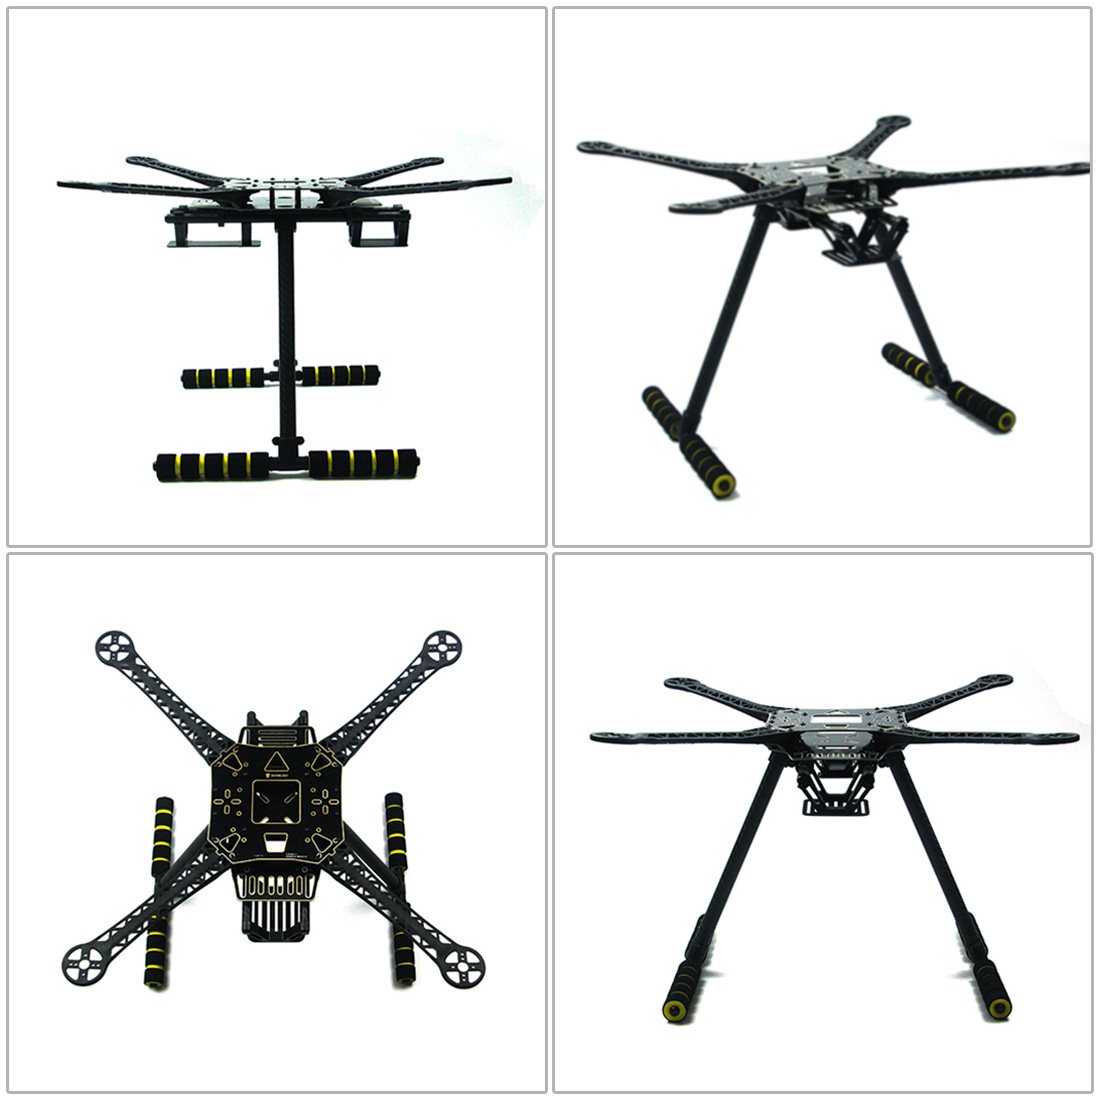 DIY RC Drone Full Kit 4 Axle S600 Frame PIX 2.4.8 Flight Control Buzzer Alarm FS i6 Transmitter Motor GPS with Battery Charger - 2